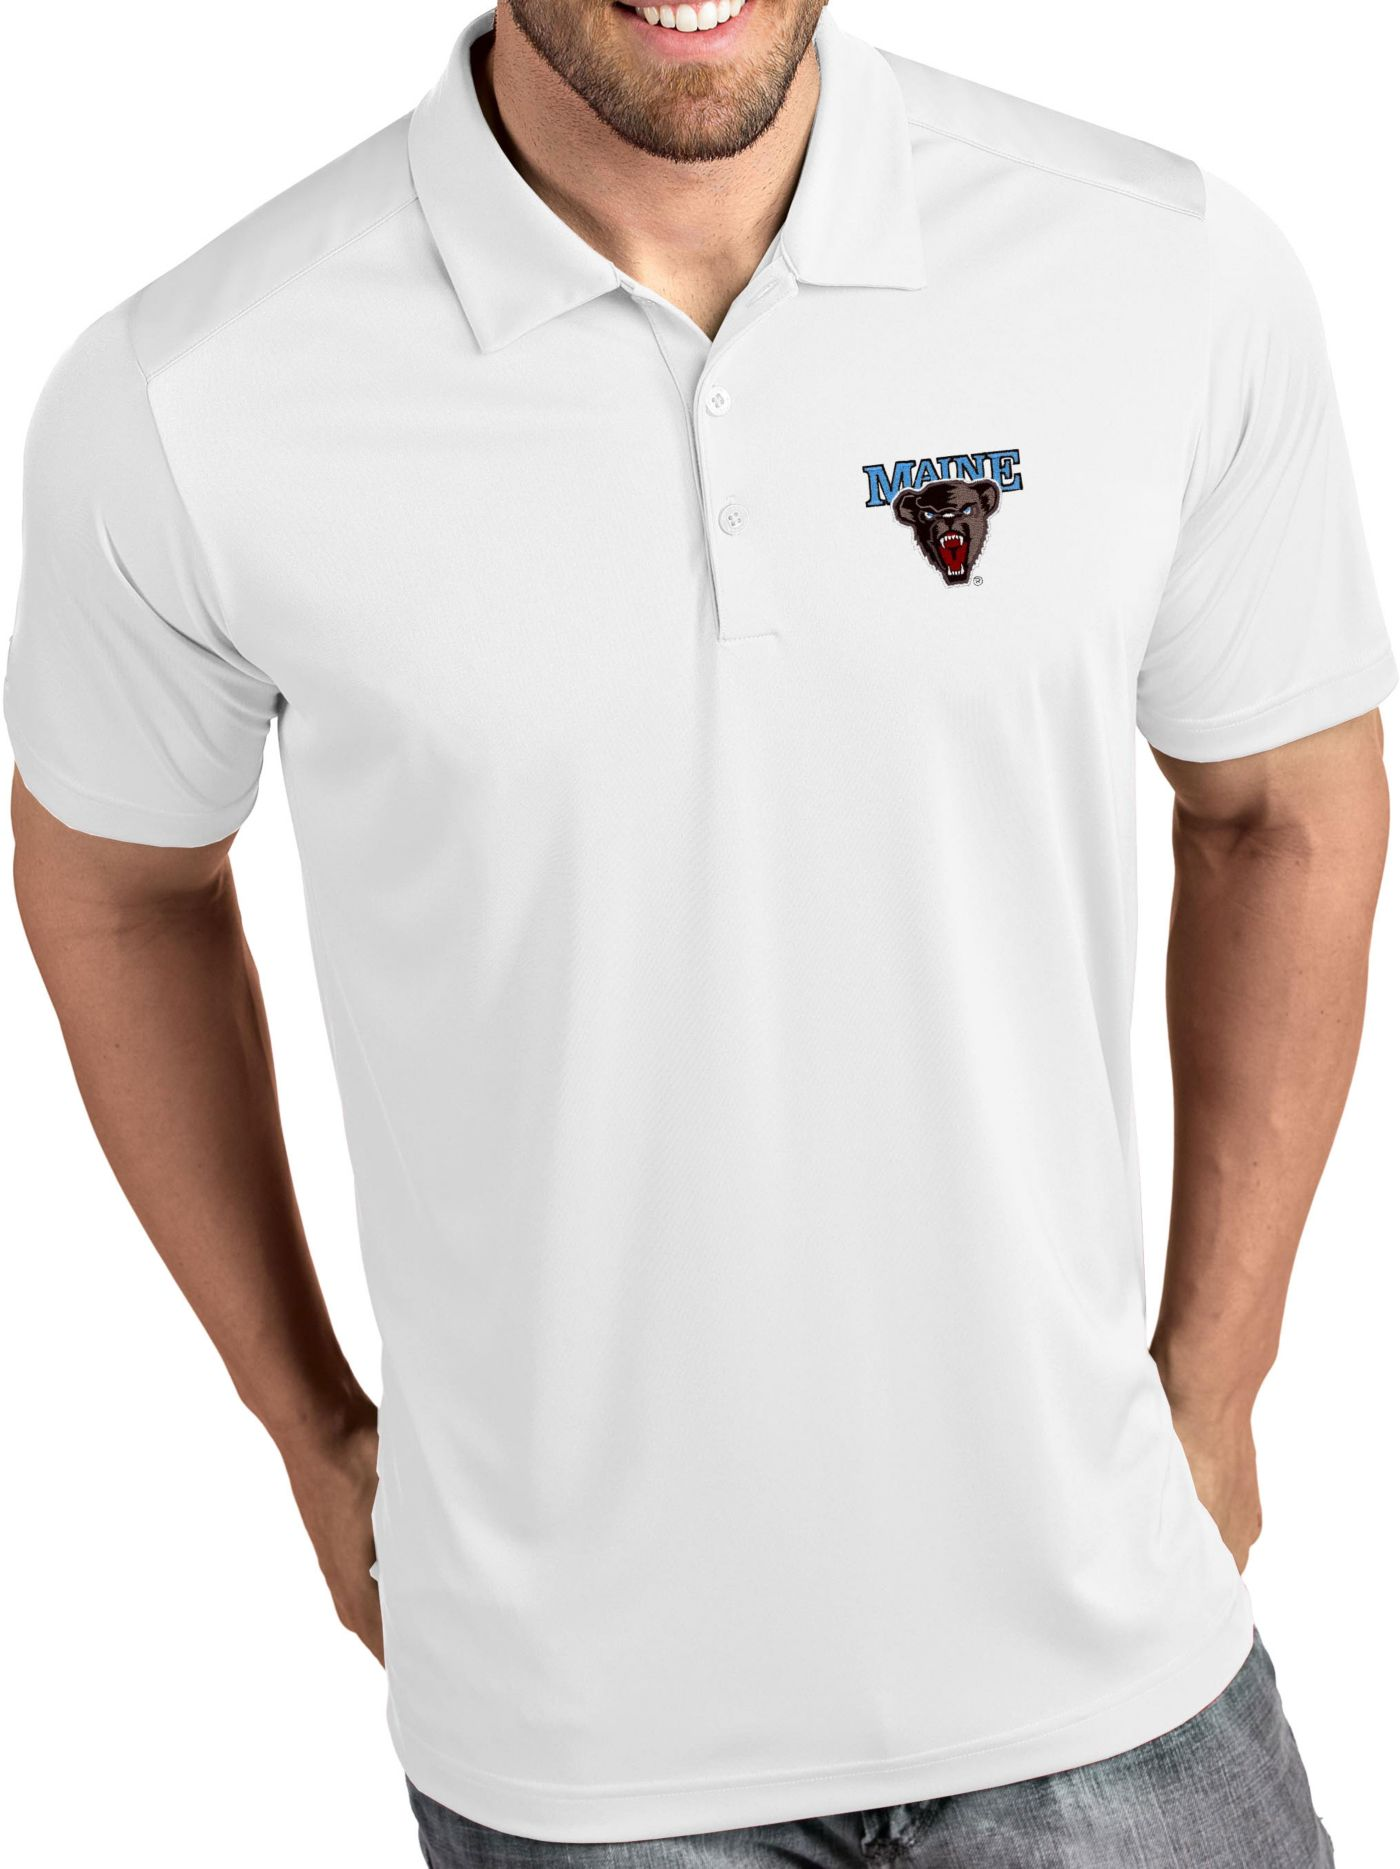 Antigua Men's Maine Black Bears Tribute Performance White Polo